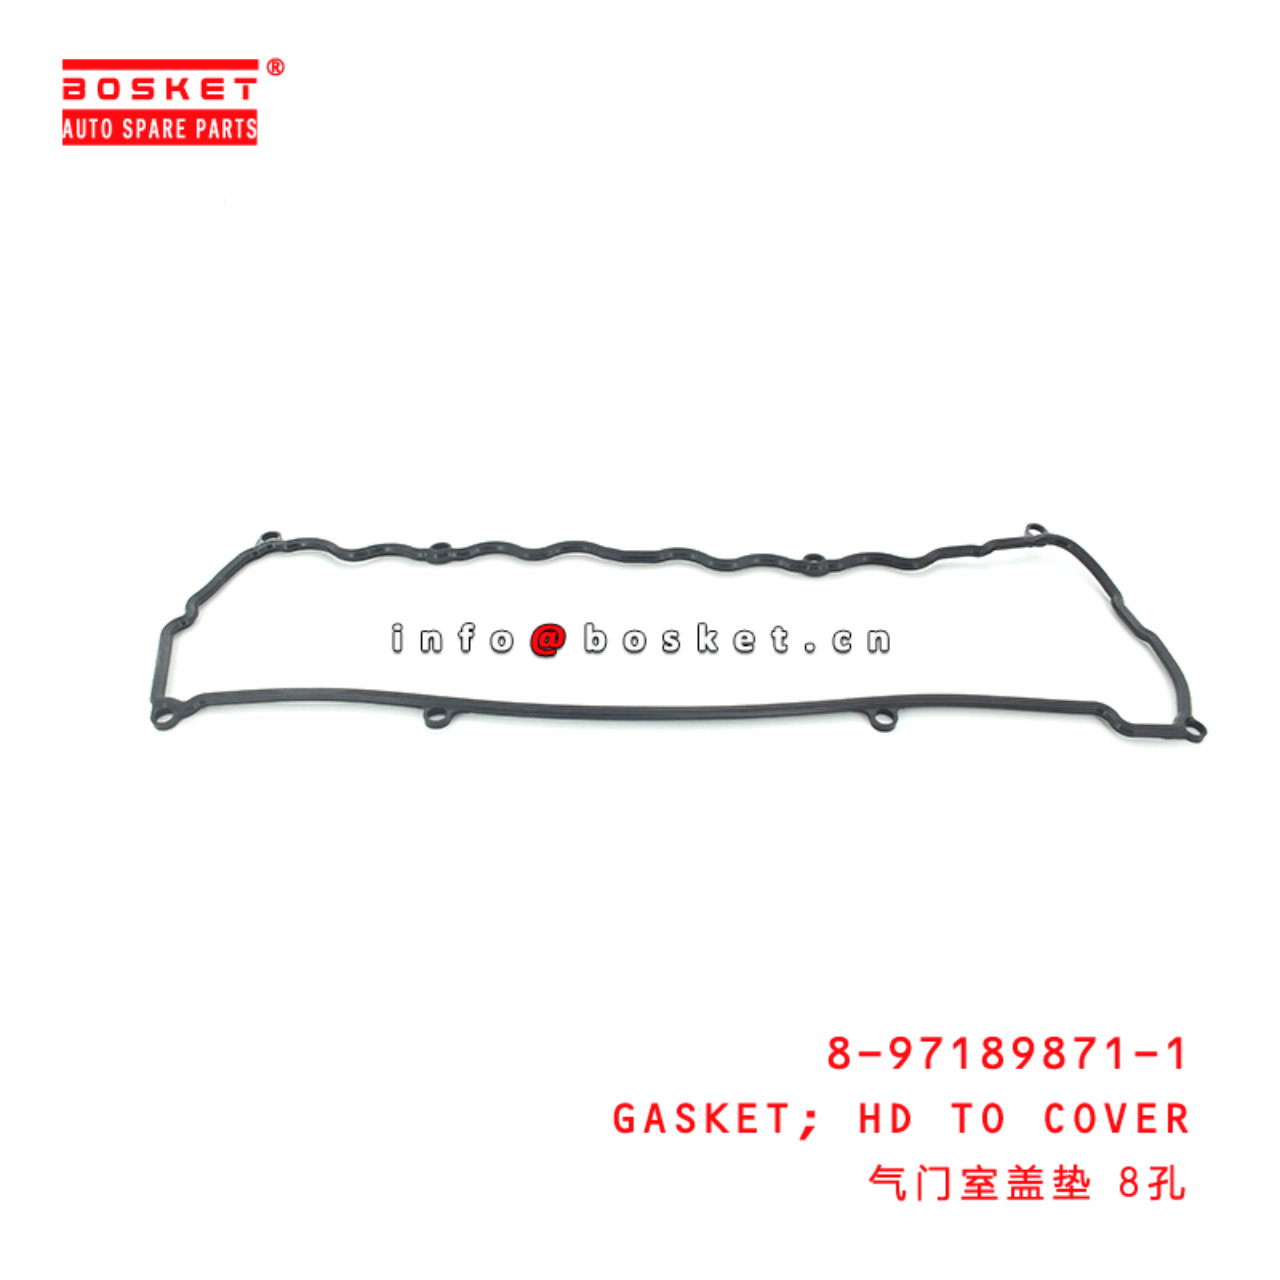 8-97189871-1 Head To Cover Gasket 8971898711 Suitable for ISUZU NPR 4HF1